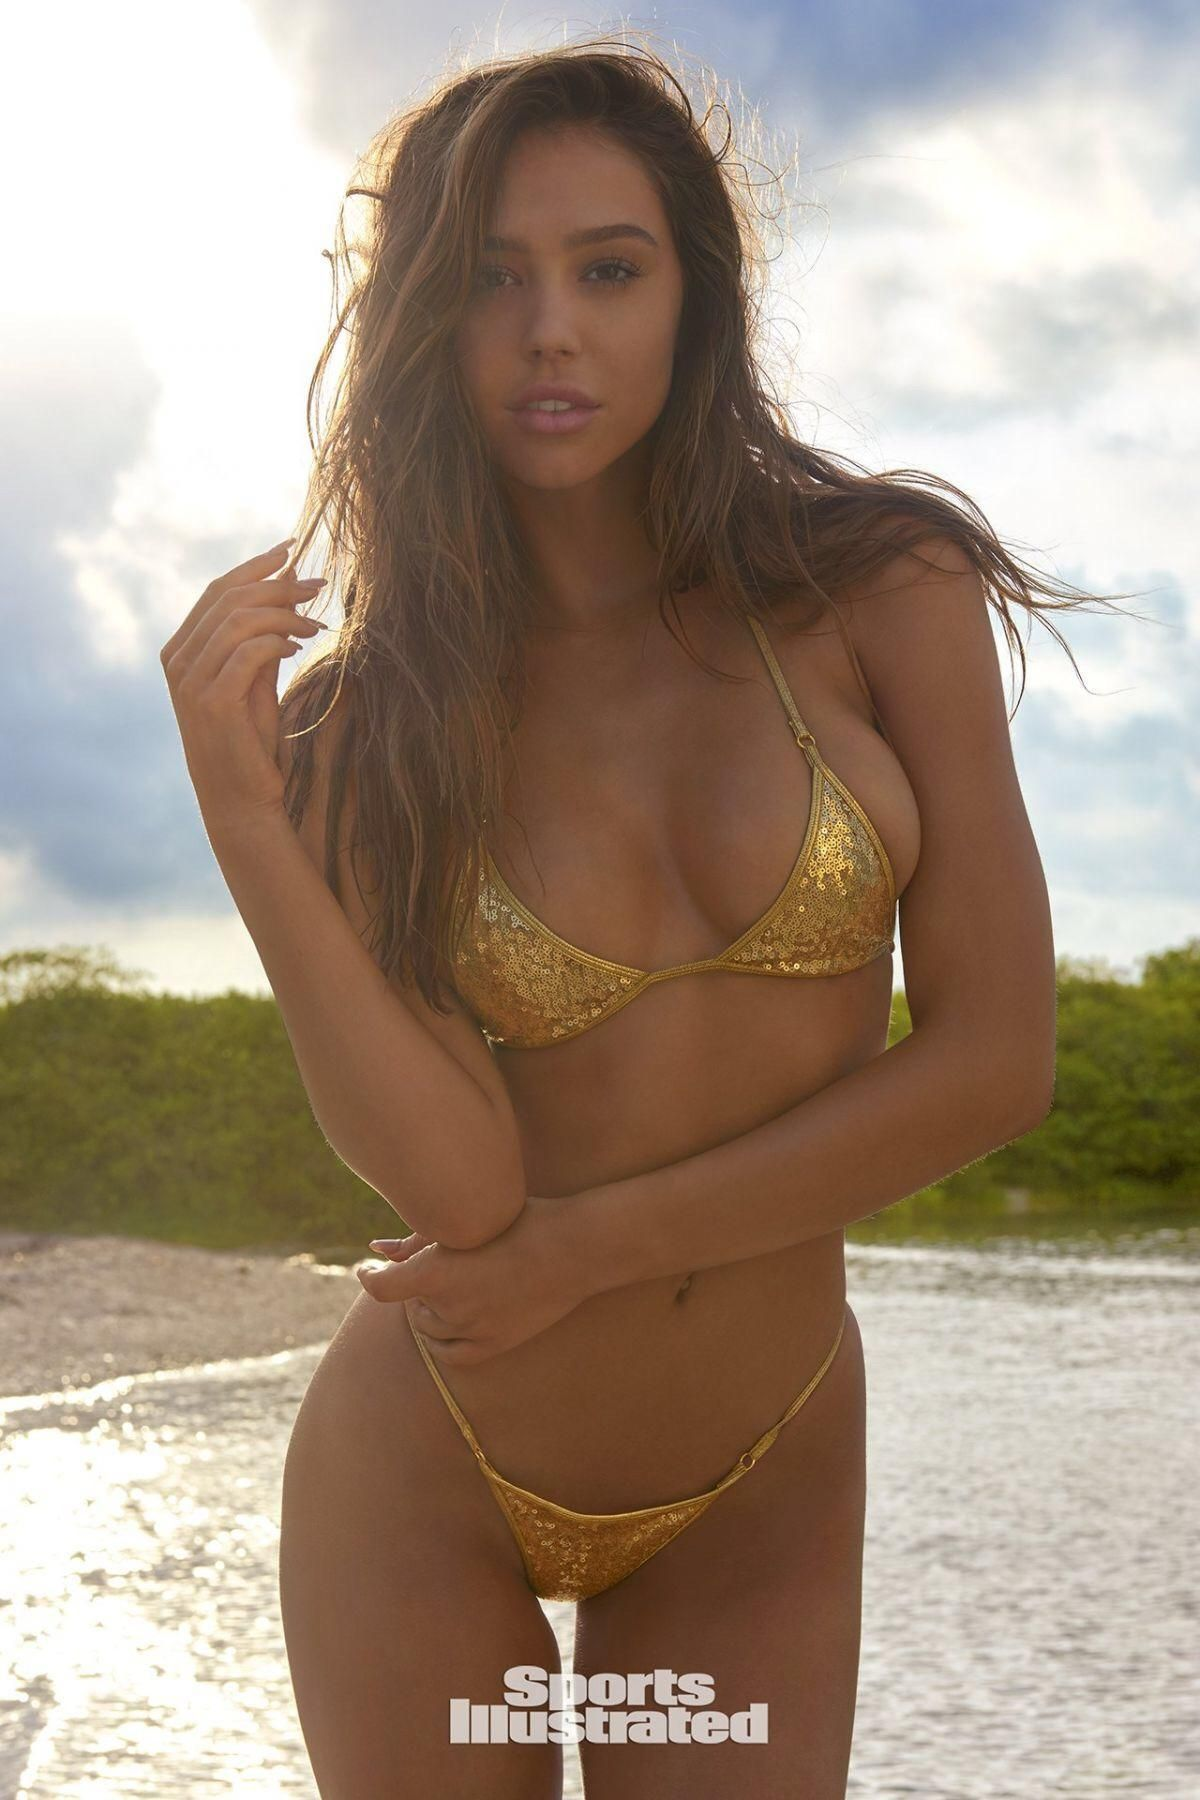 Discussion on this topic: Candice blackburn, alexis-ren-sexy-27-photos/